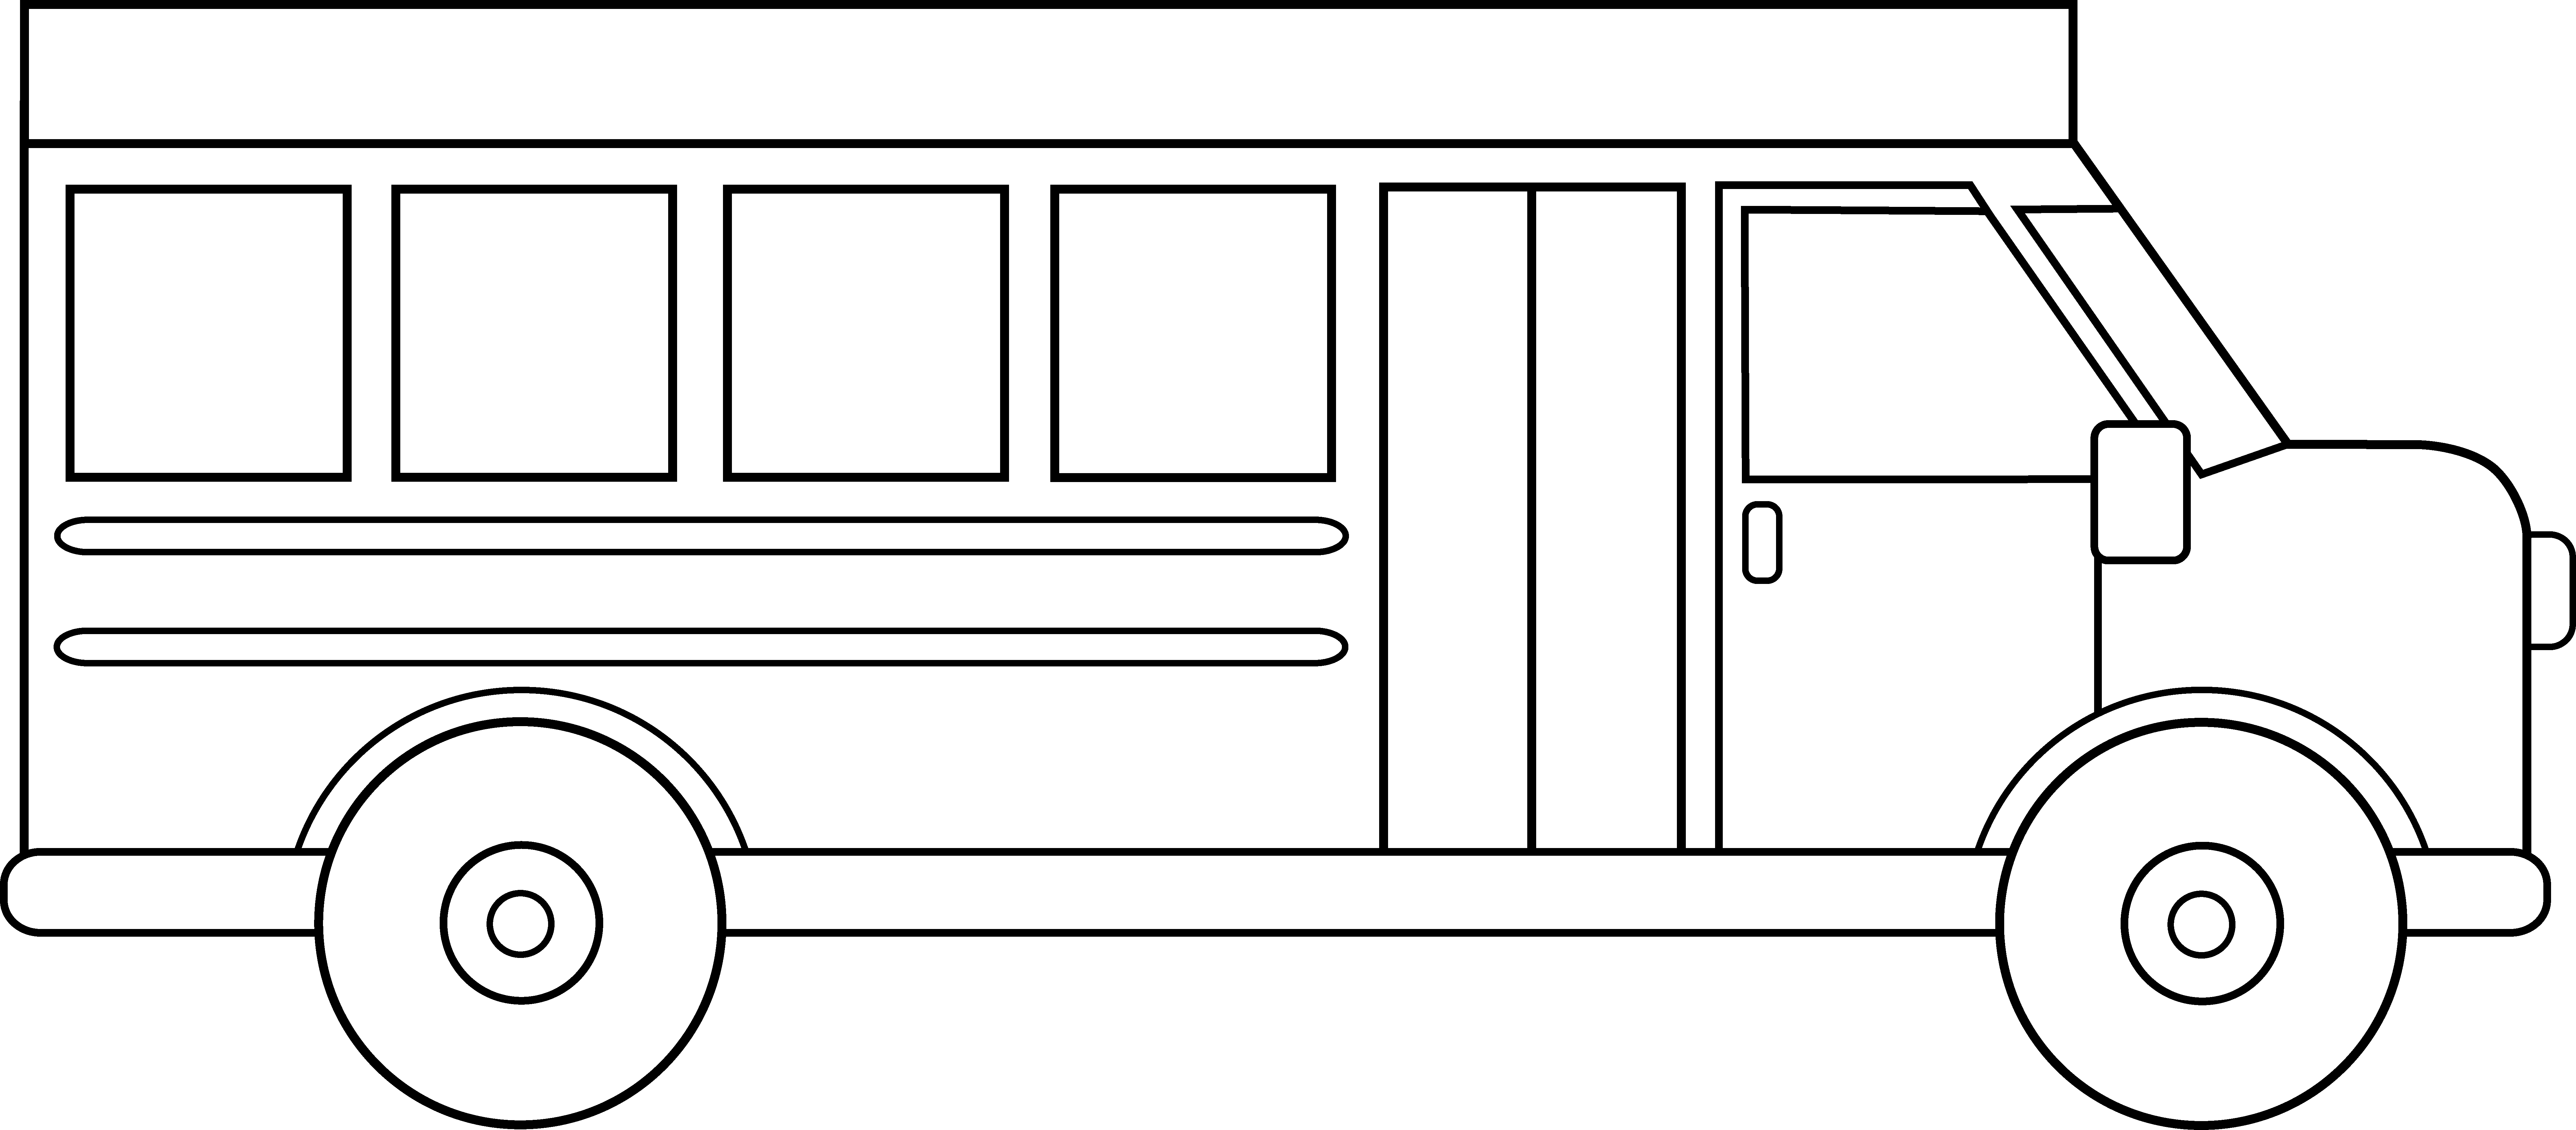 Transport drawing outline. Free school bus download